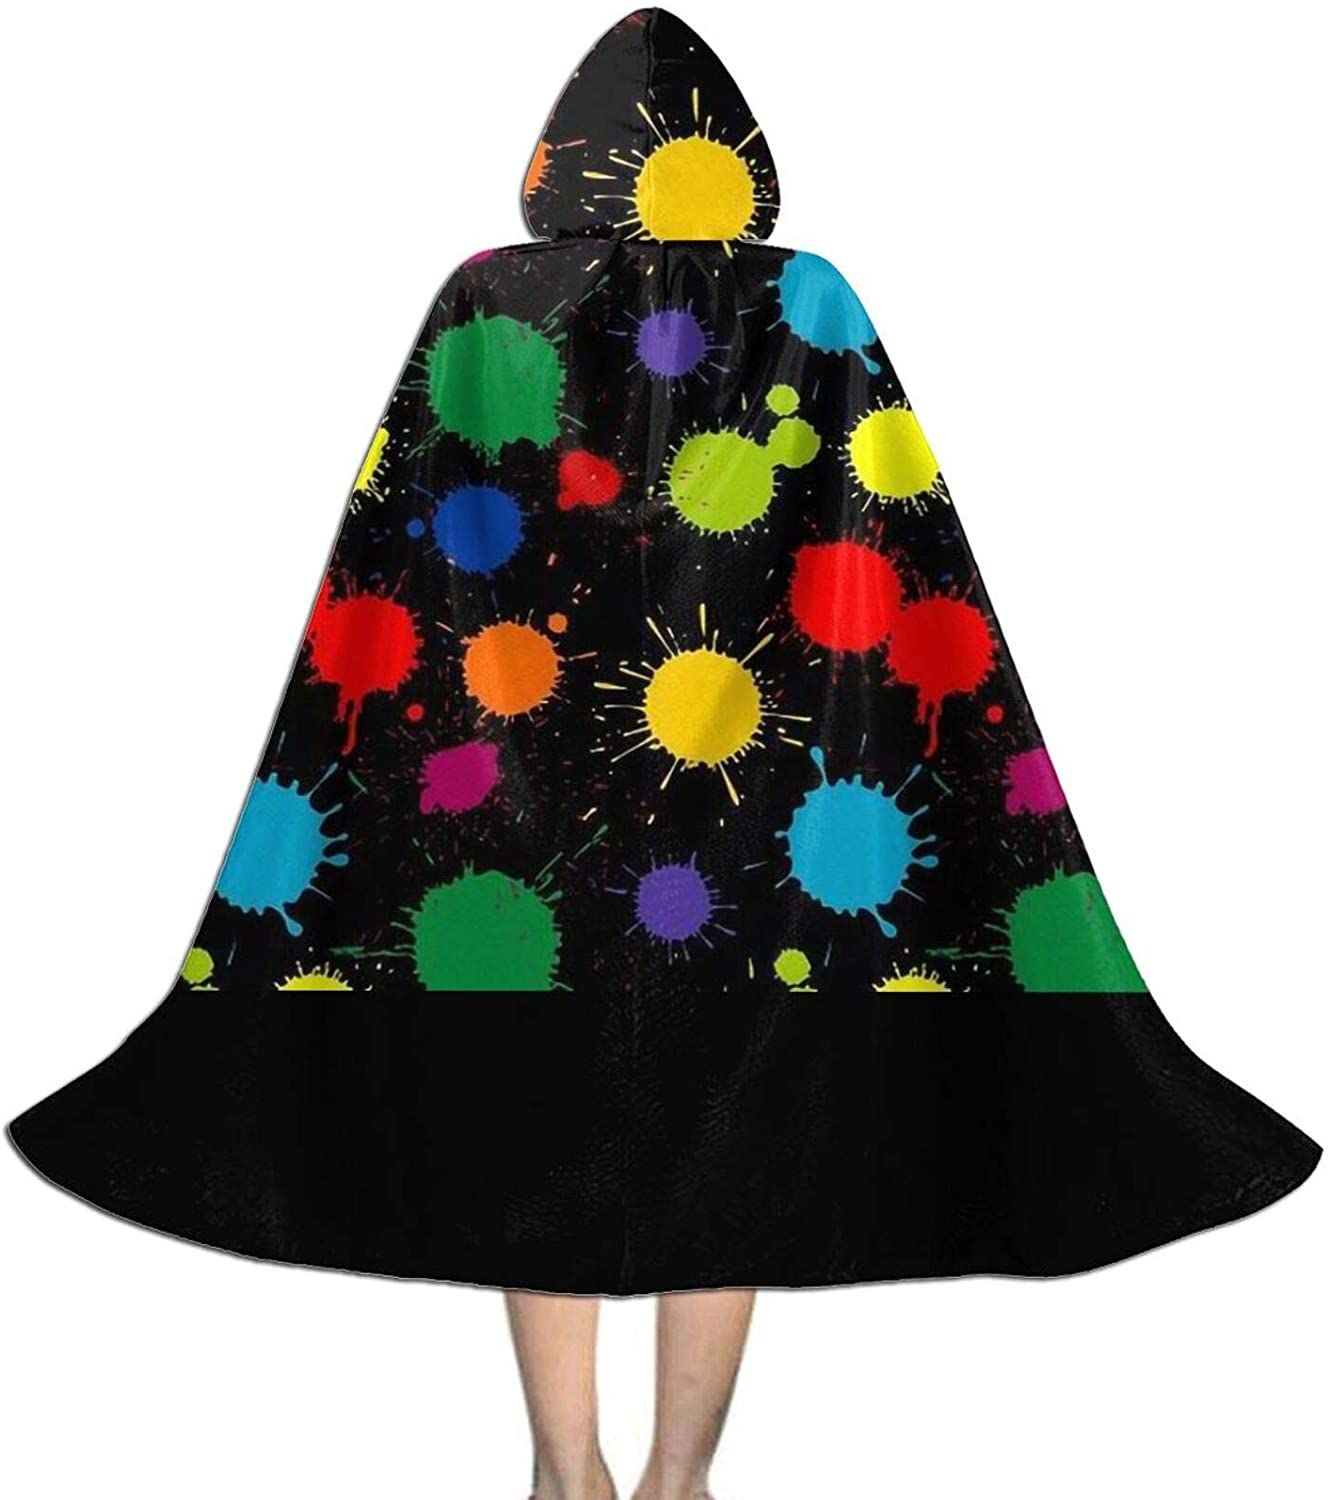 LNUO-1 Unisex Splatter Paint Kid's Long Hooded Cloak Cape for Halloween Party Role Cosplay Costumes